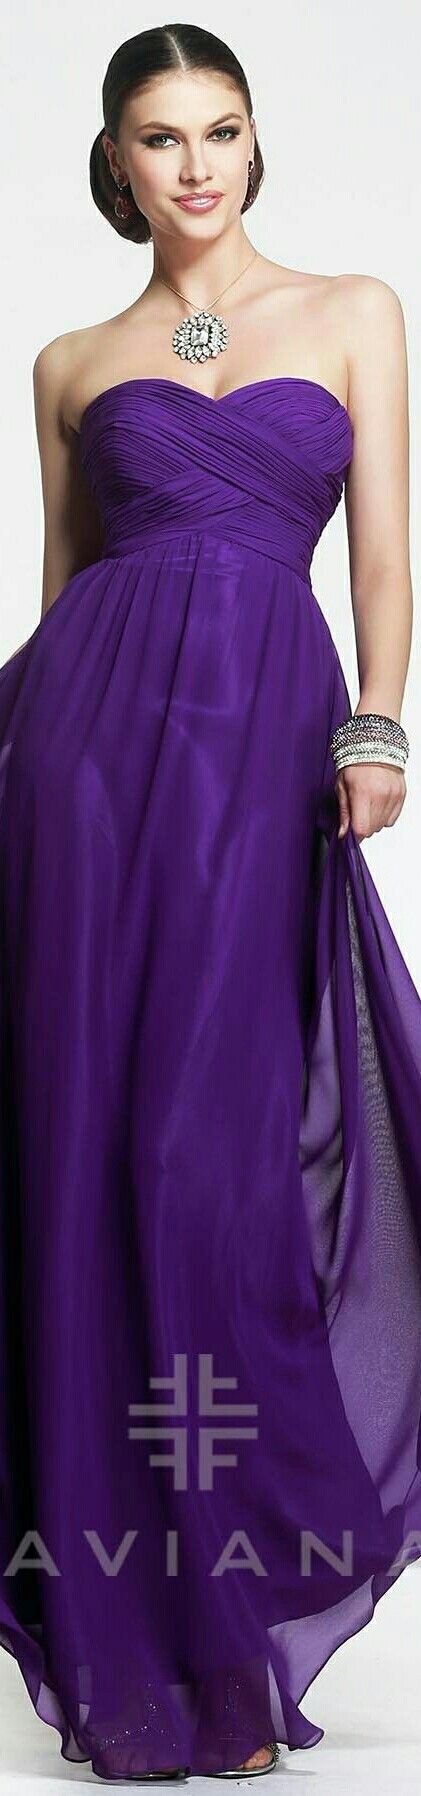 ❤FAVIANA Evening/Prom Gown in Purple #7338❤